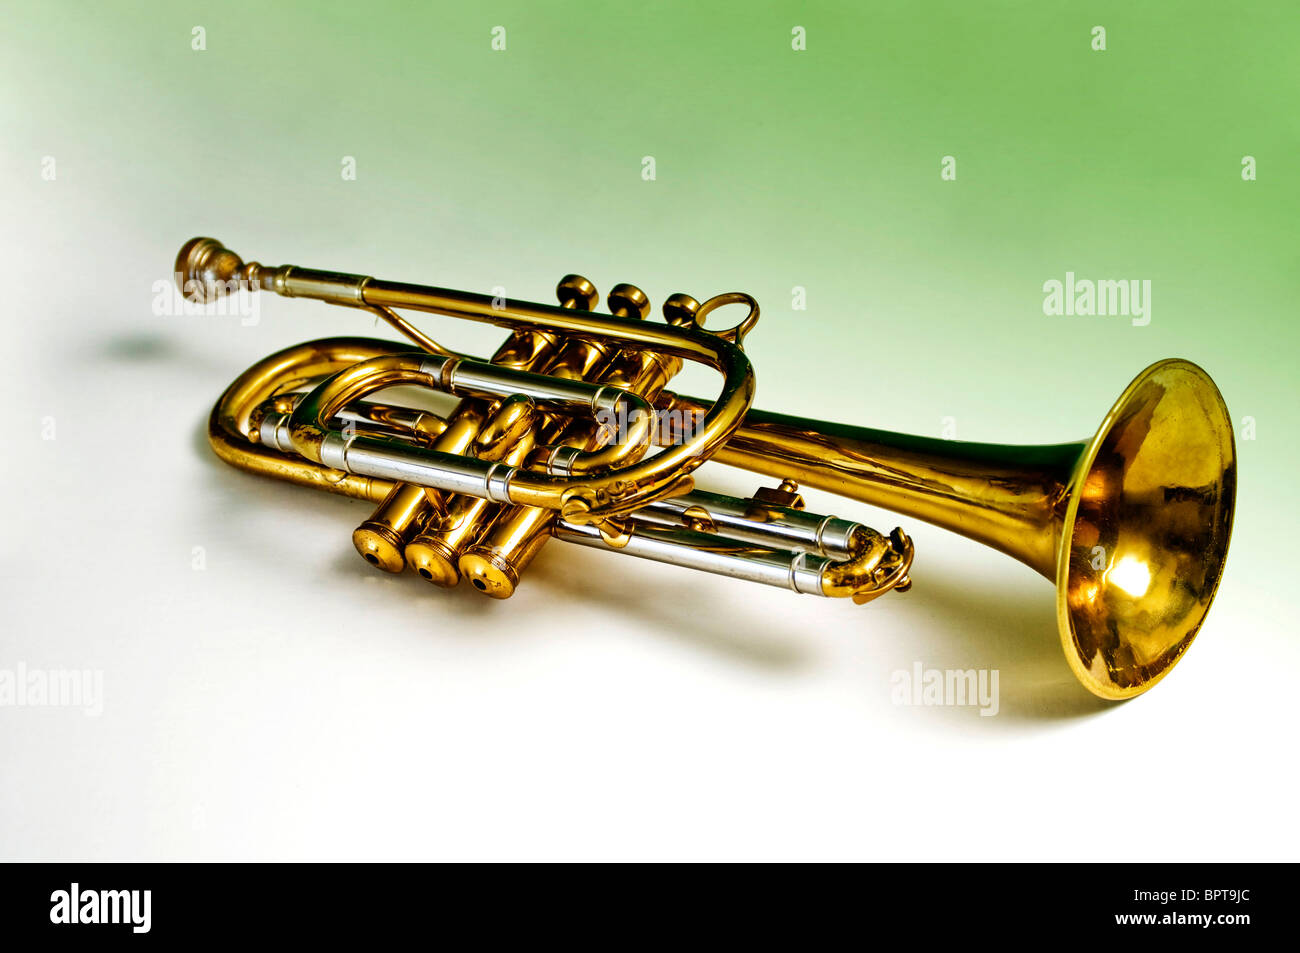 Brass trumpet against a white to green gradient background - Stock Image